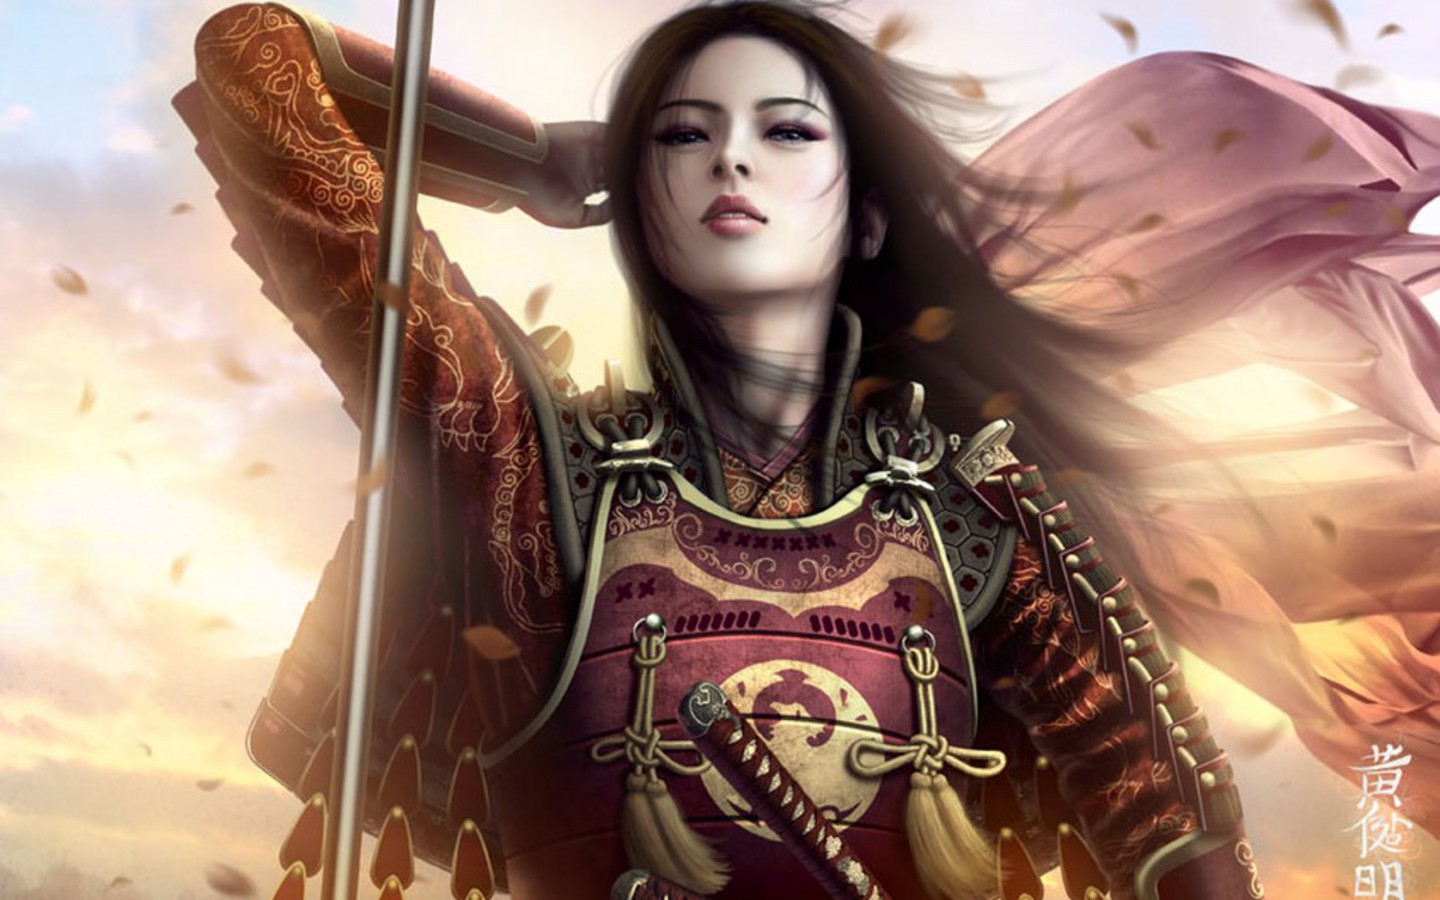 A Cynical Analysis of Women in Fantasy (Part 3): The Stockiest of the Lot   Second in Rome